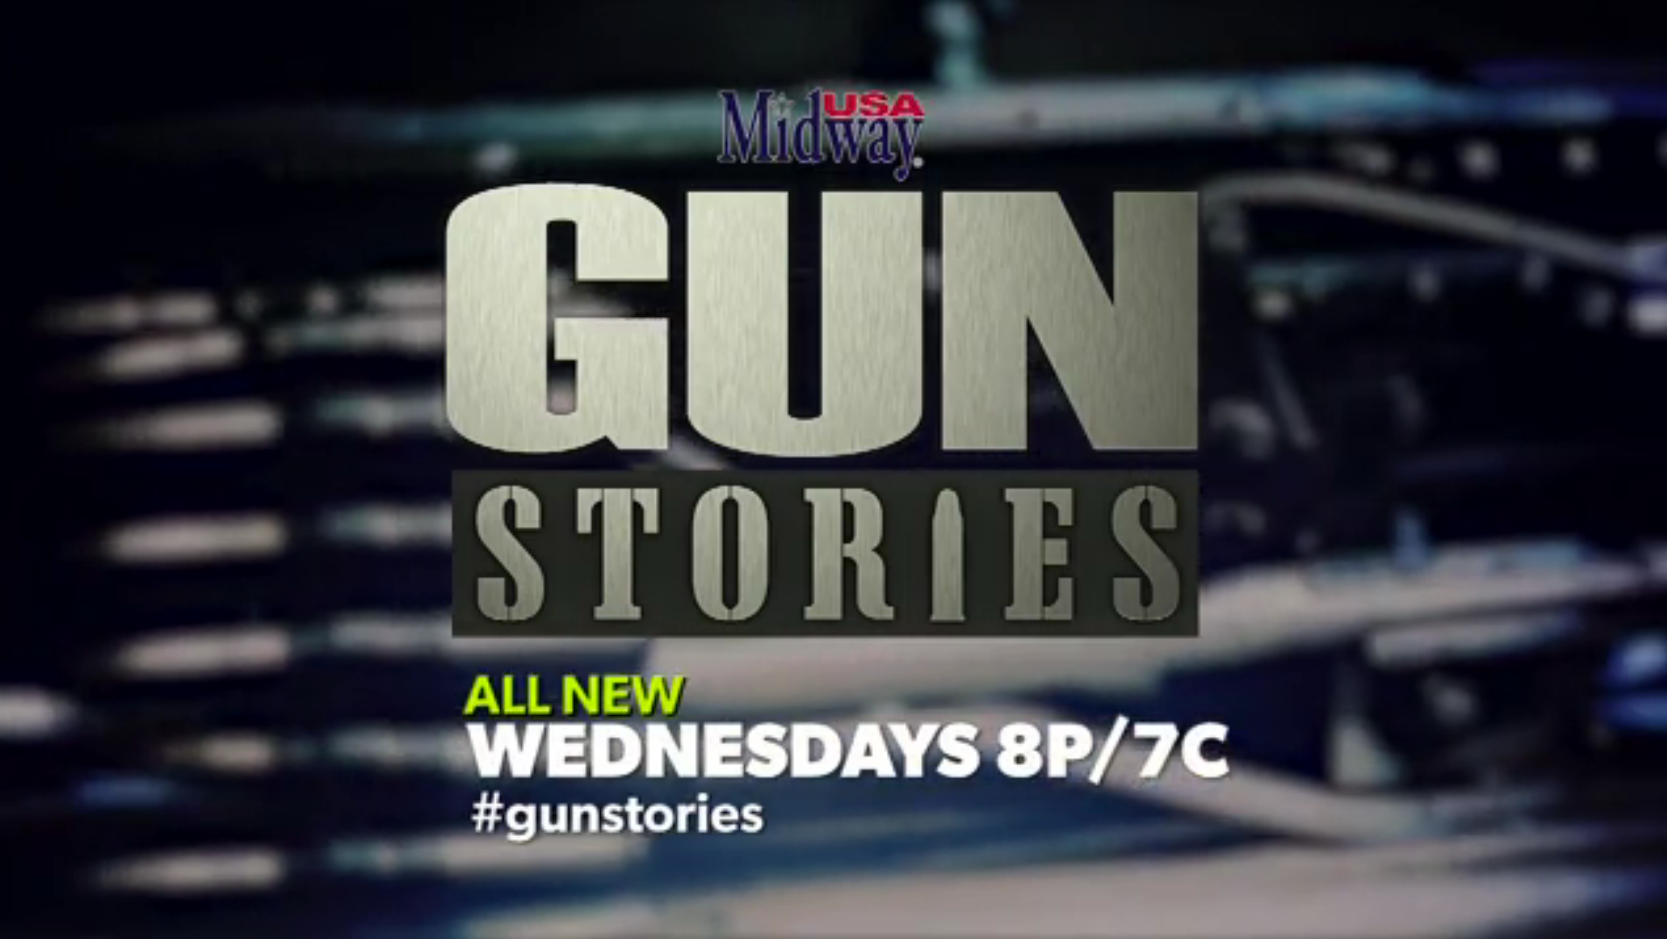 MidwayUSA's Gun Stories